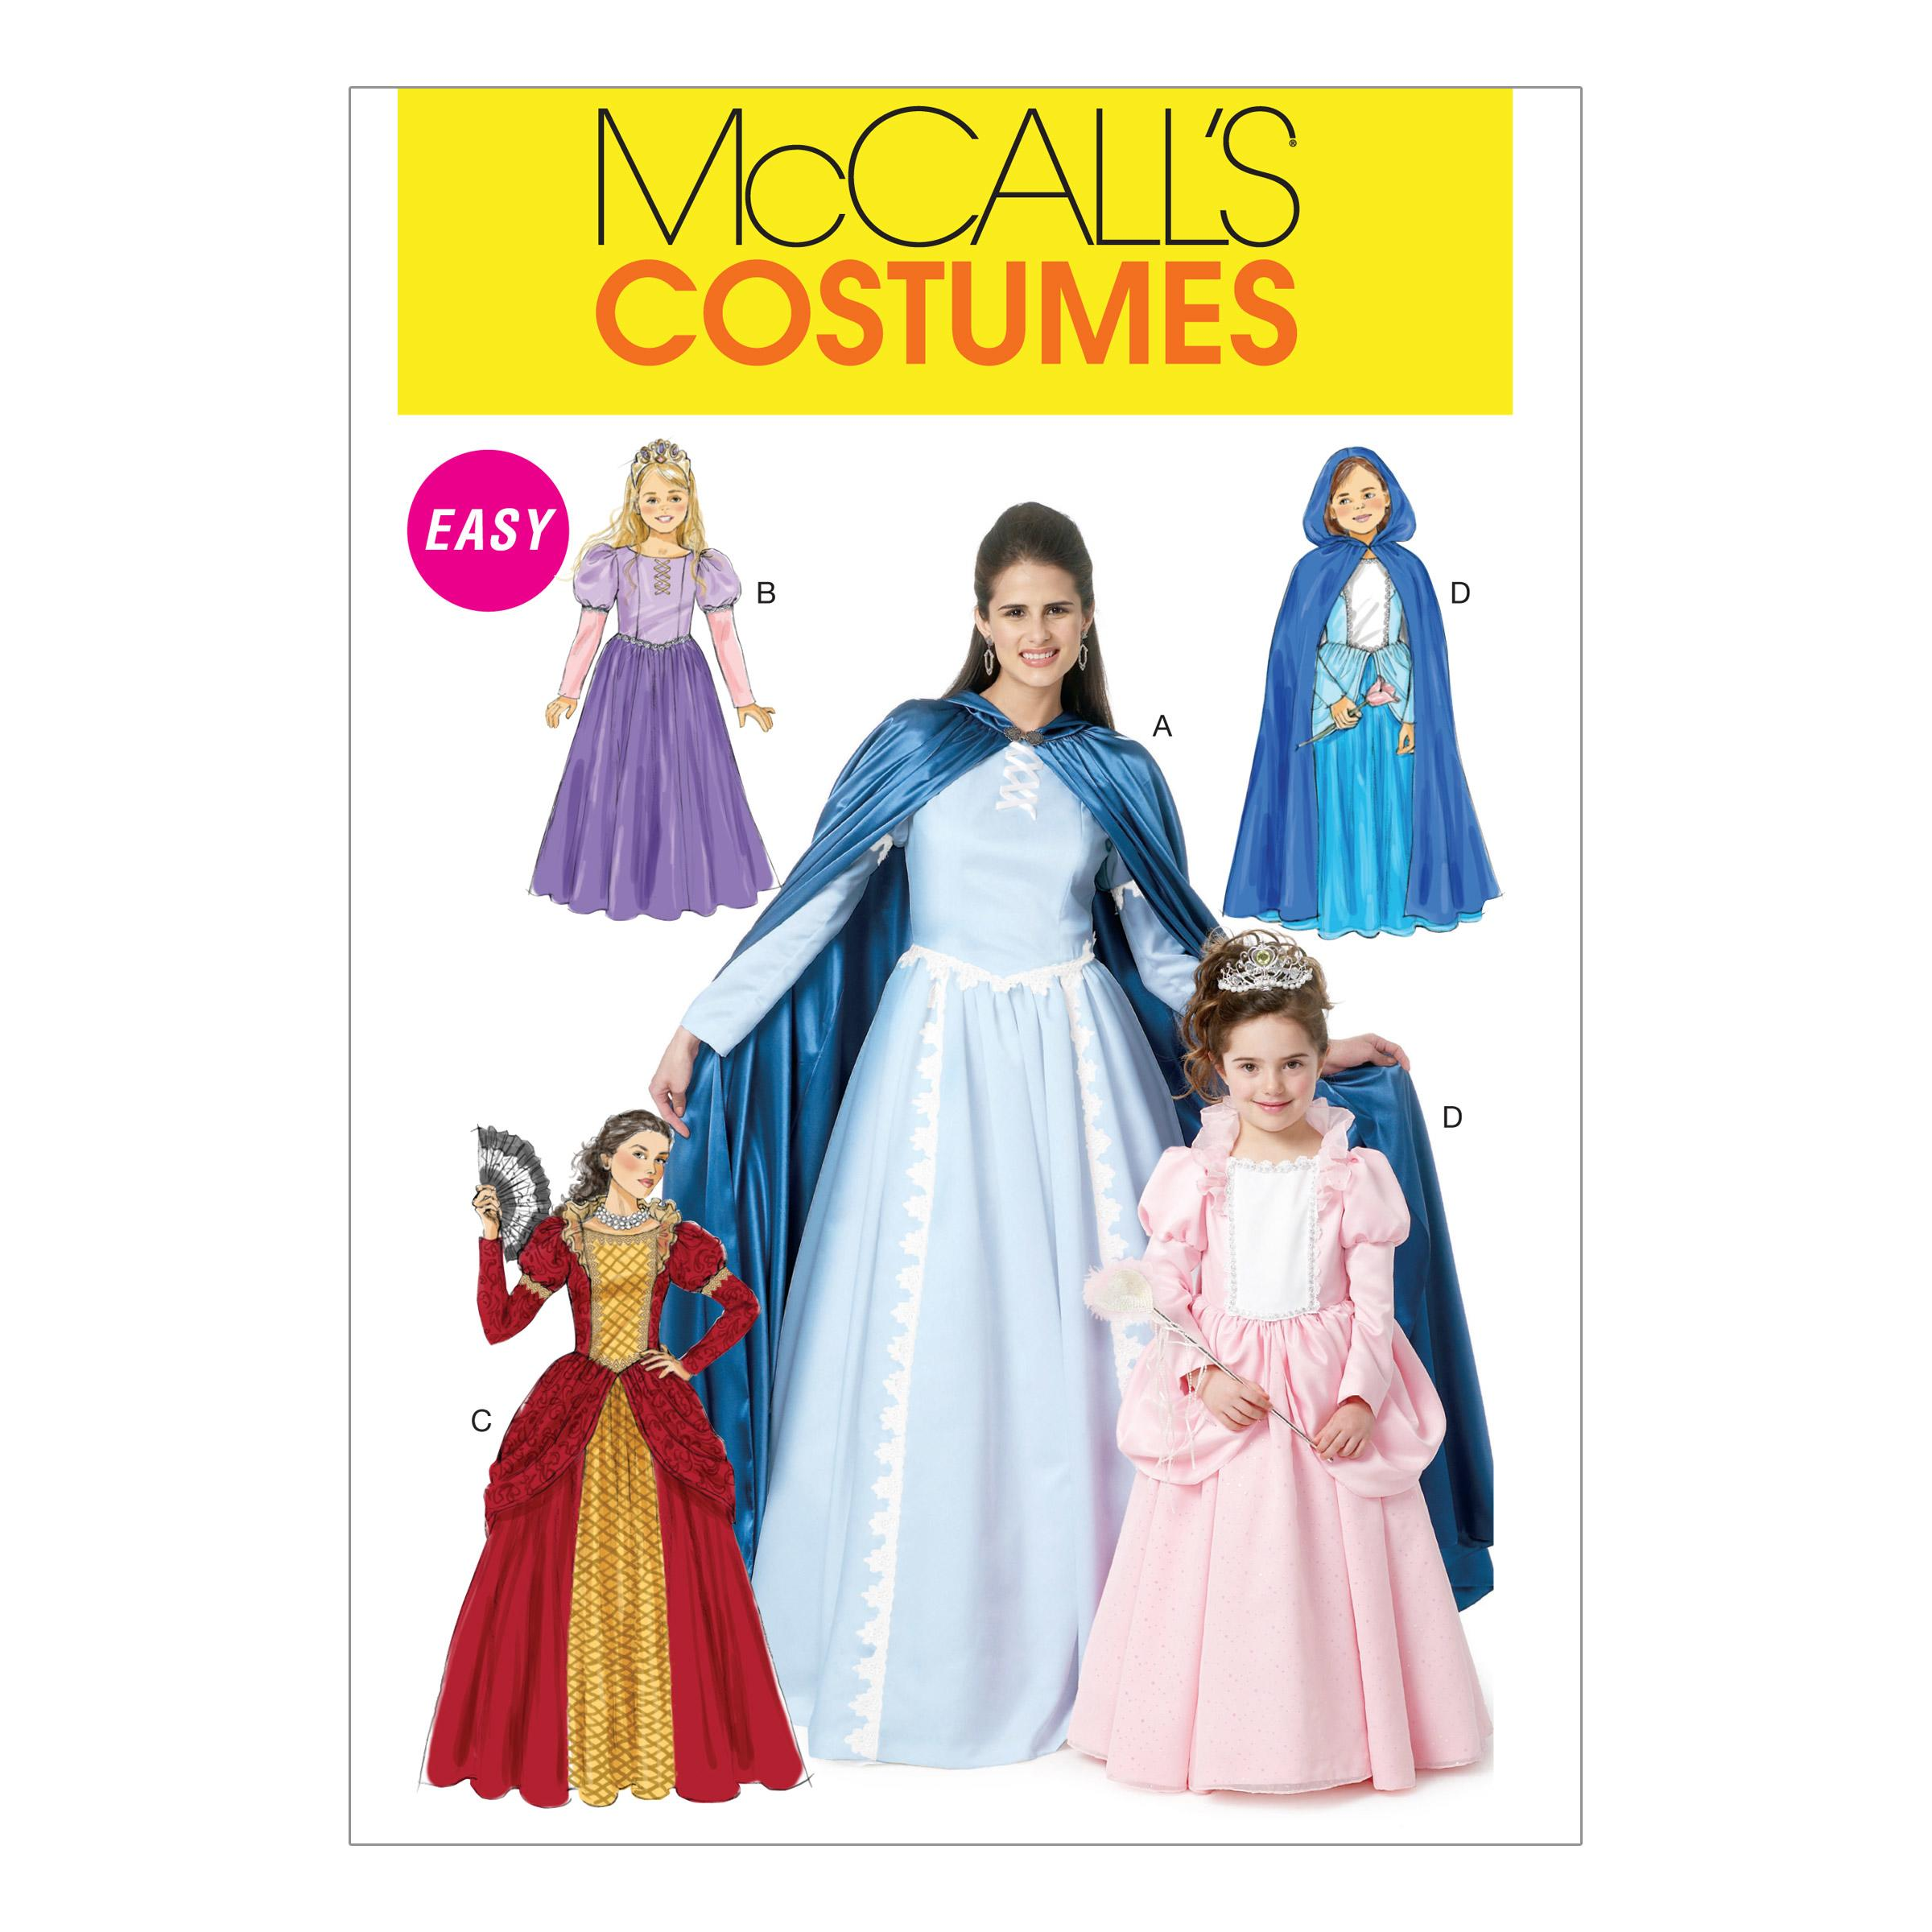 McCalls M6420 Costumes, Halloween